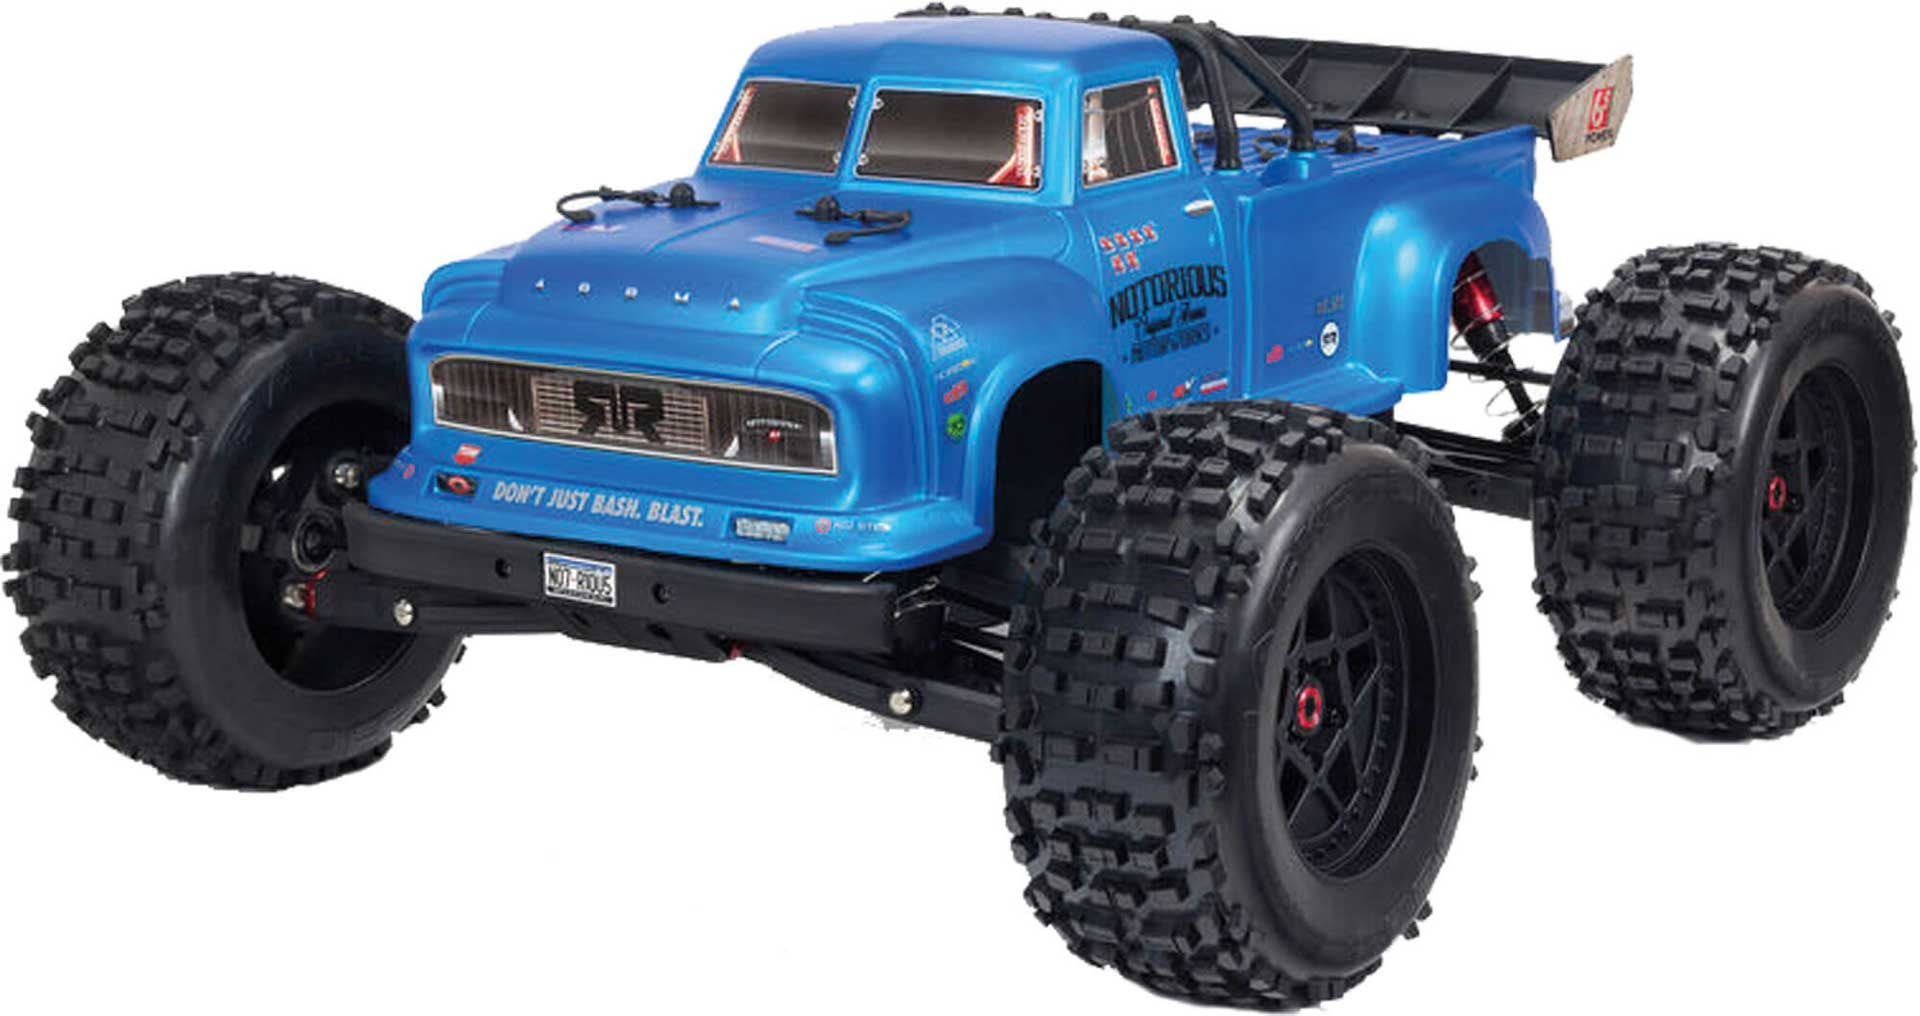 ARRMA Notorious 6S V5 4WD BLX 1/8 RTR Blue Stunt Truck